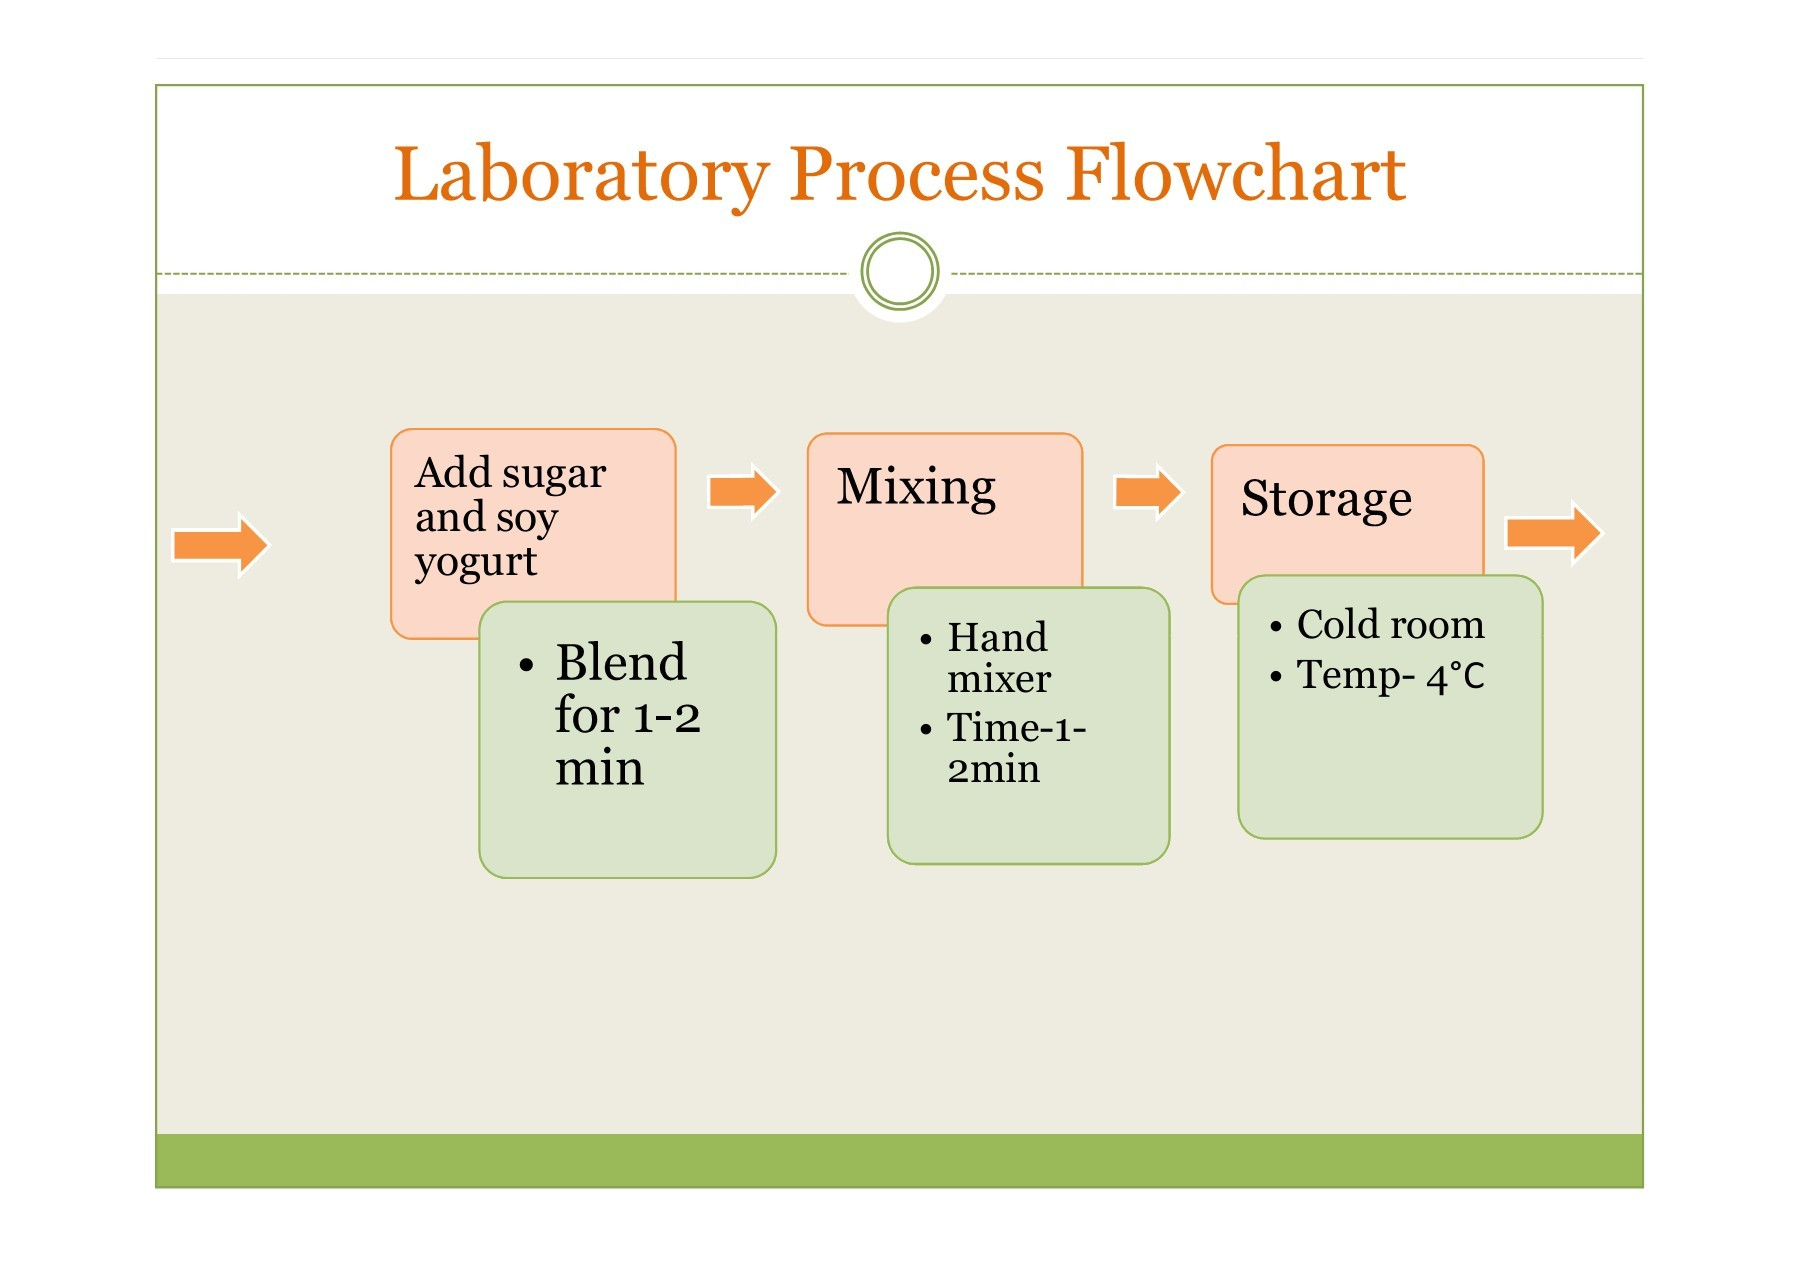 Flow Diagram Making Yogurt Gallery Auto Electrical Wiring Process